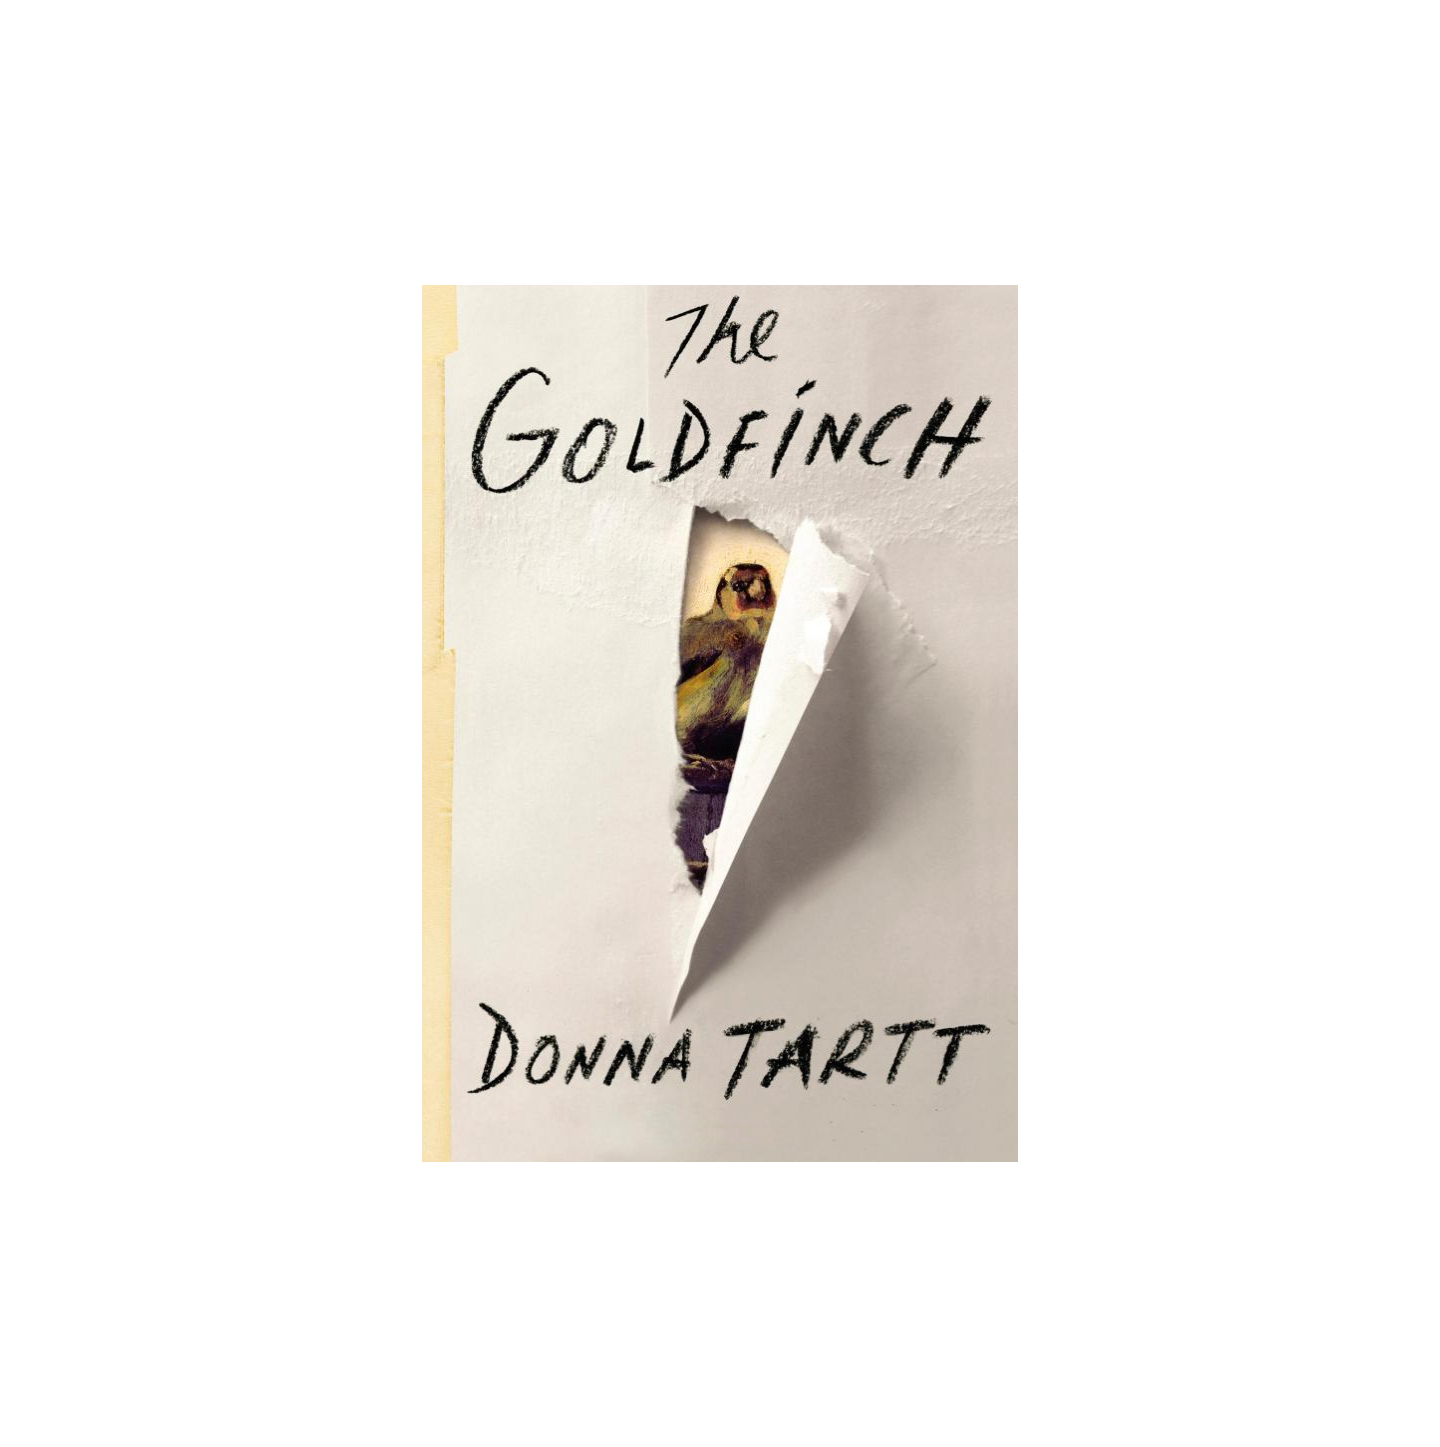 The Goldfinch, by Donna Tartt